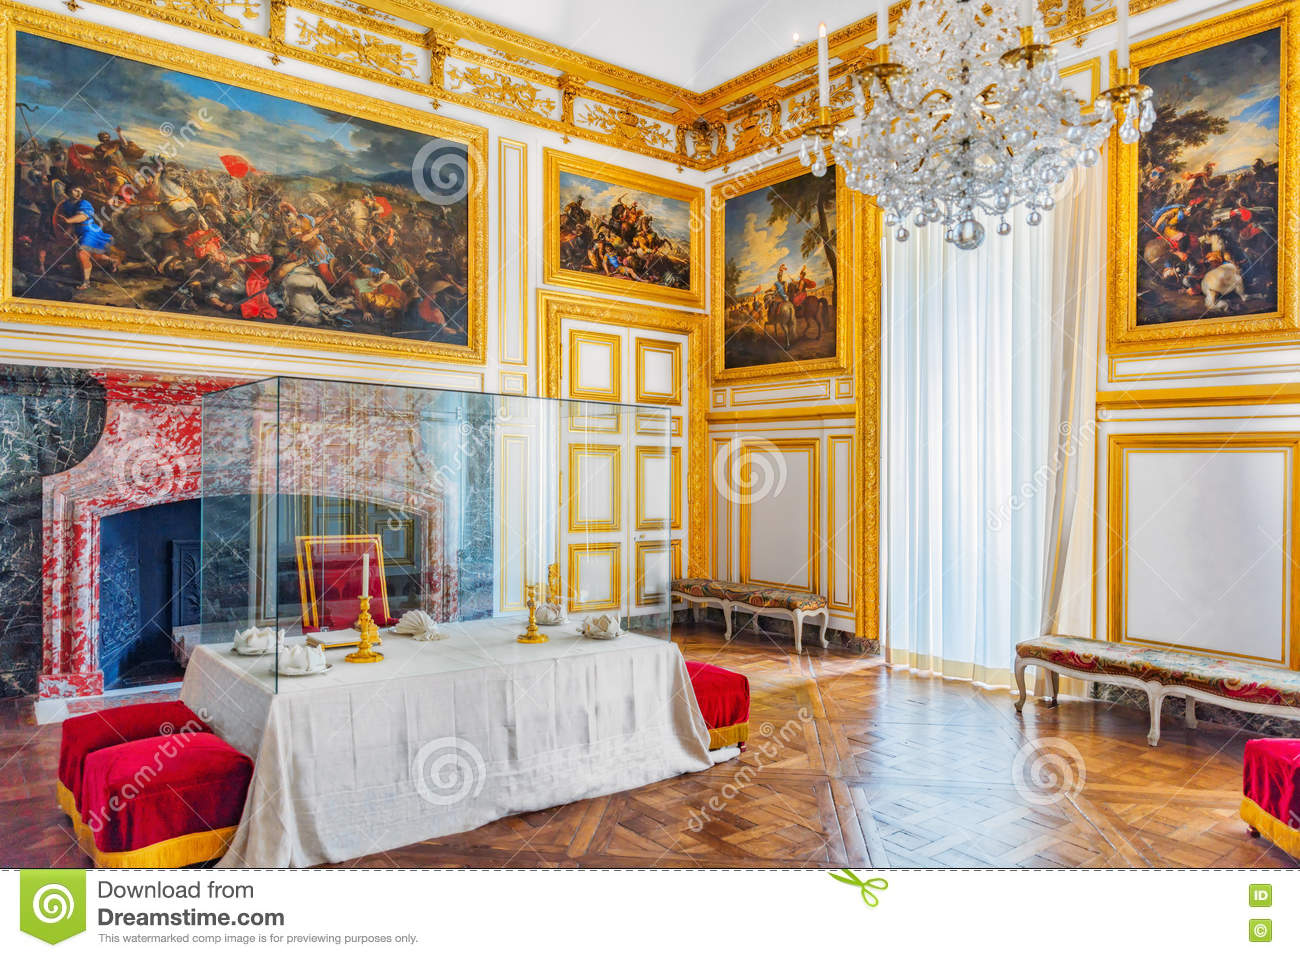 Versailles france july 02 2016 royal dining salon in for Salon versailles 2016